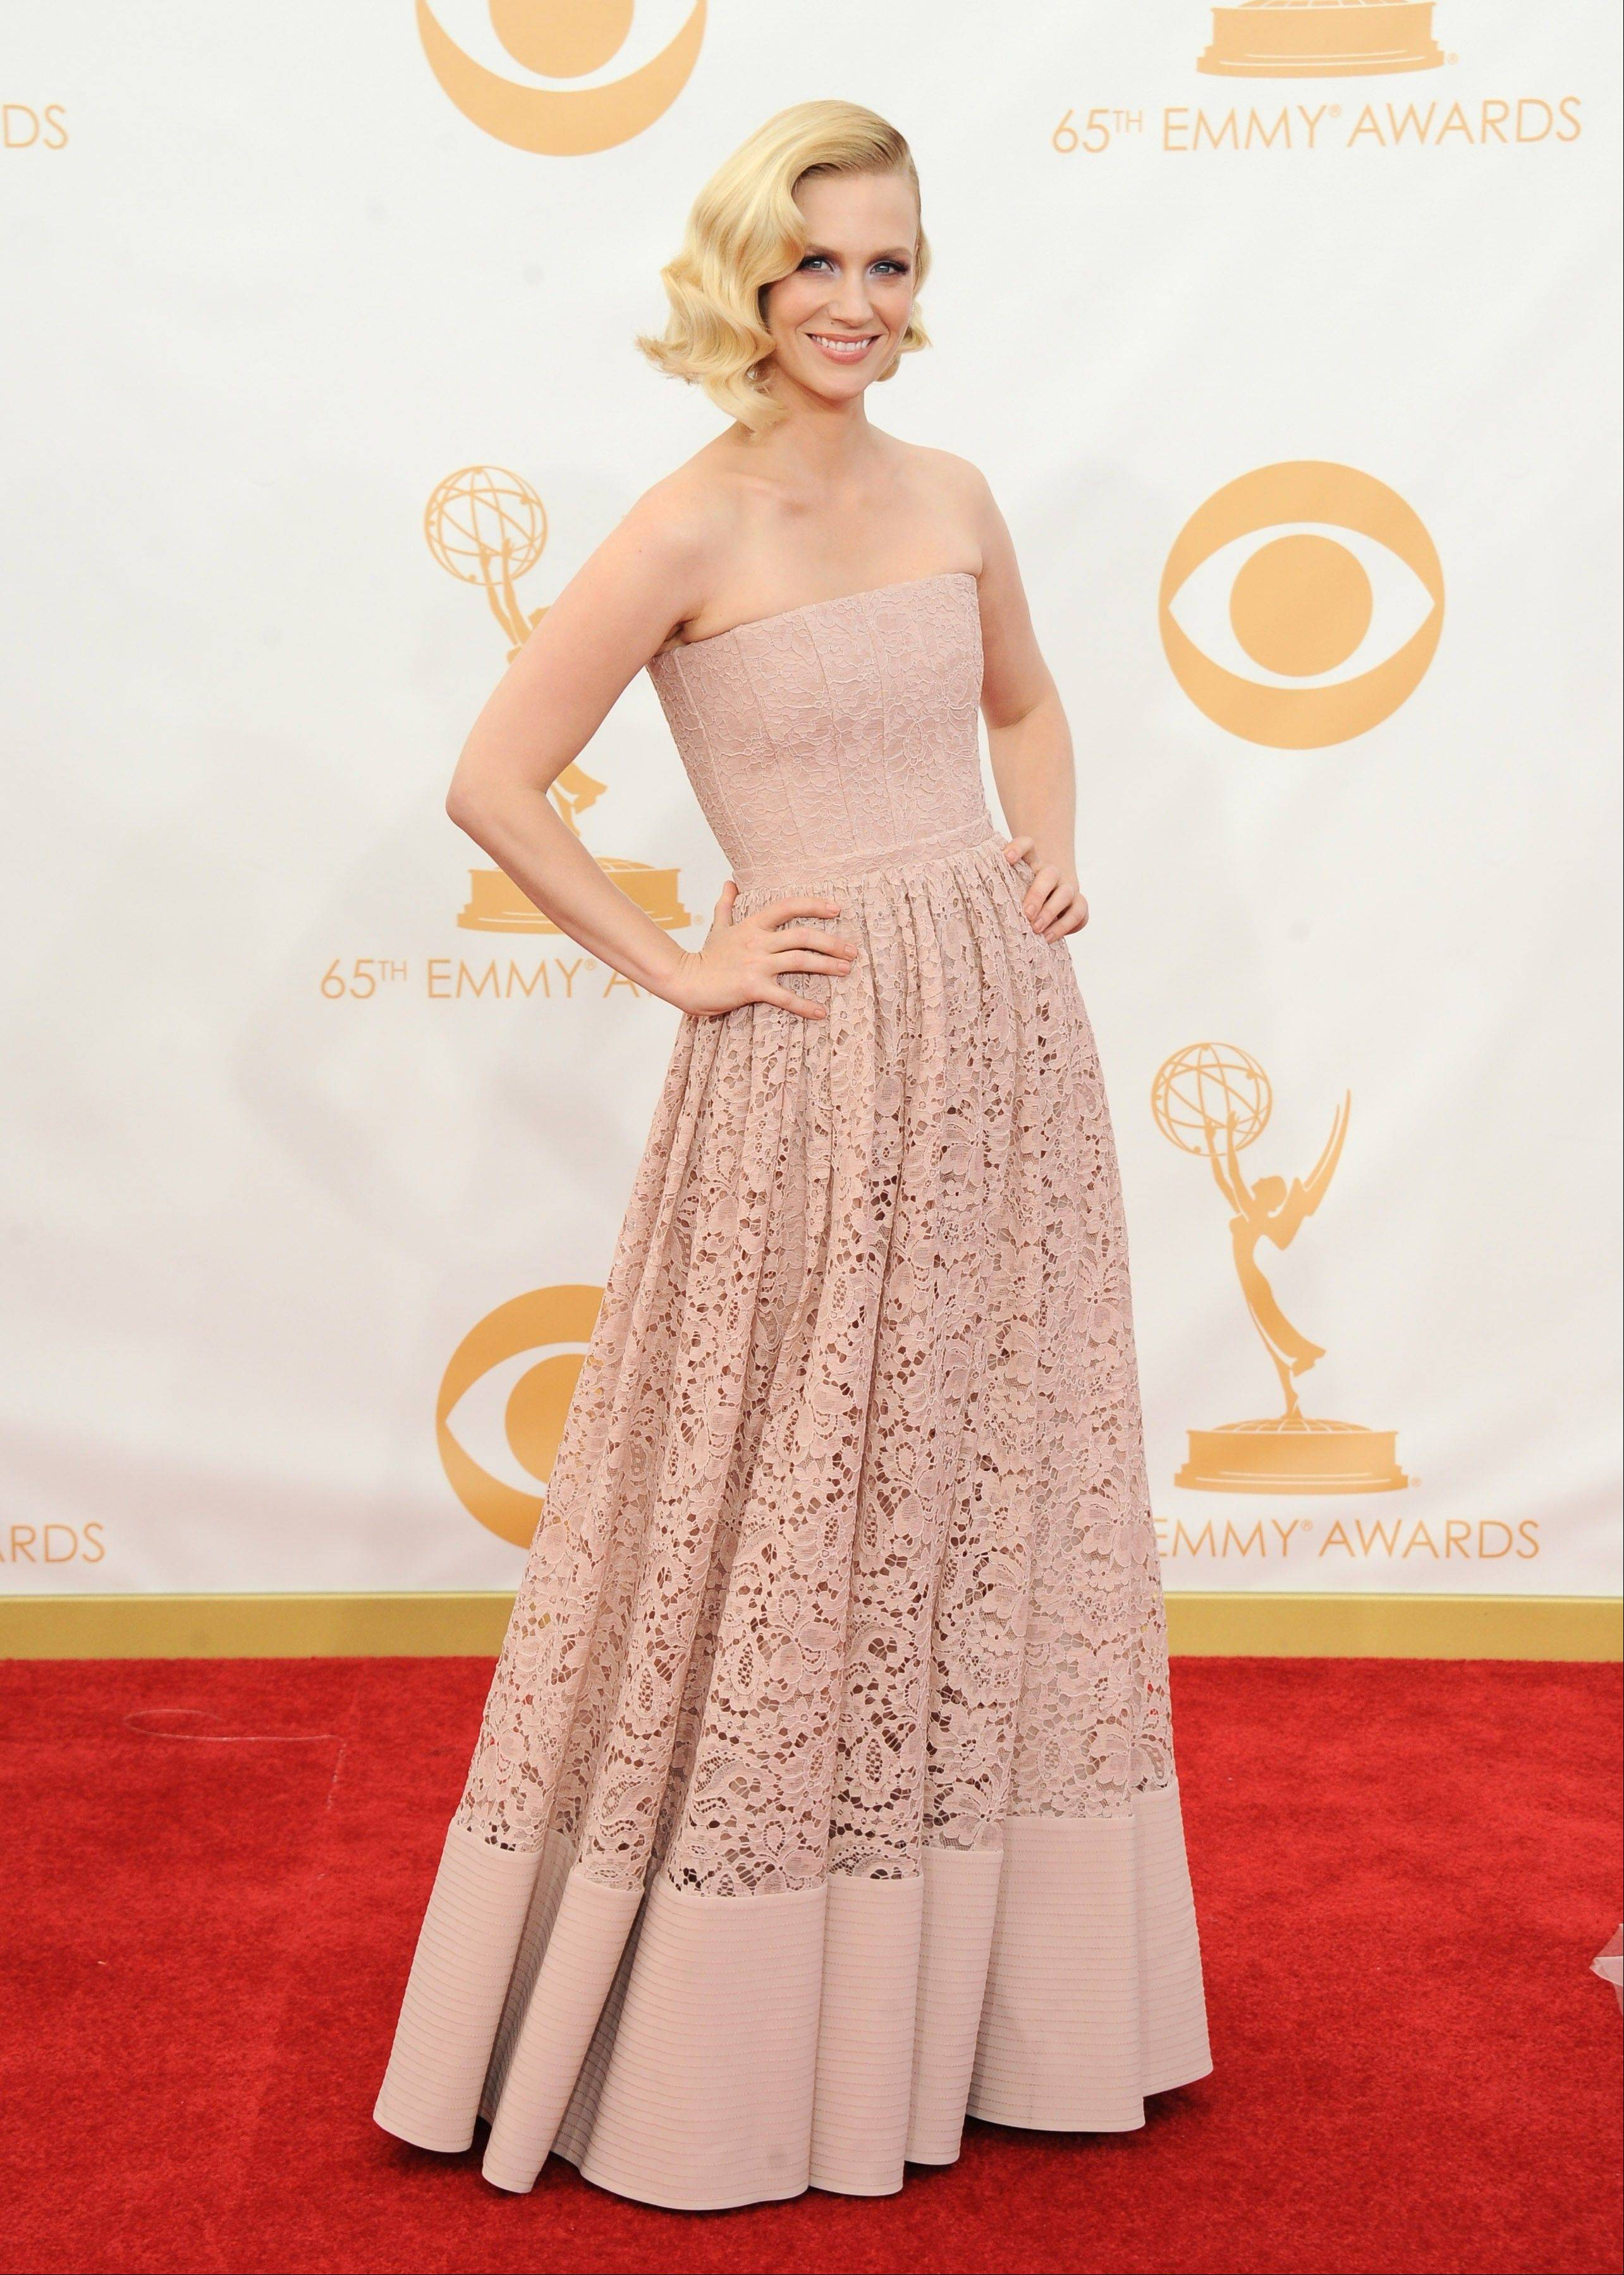 January Jones, wearing Givenchy, arrives at the 65th Primetime Emmy Awards at Nokia Theatre on Sunday in Los Angeles.